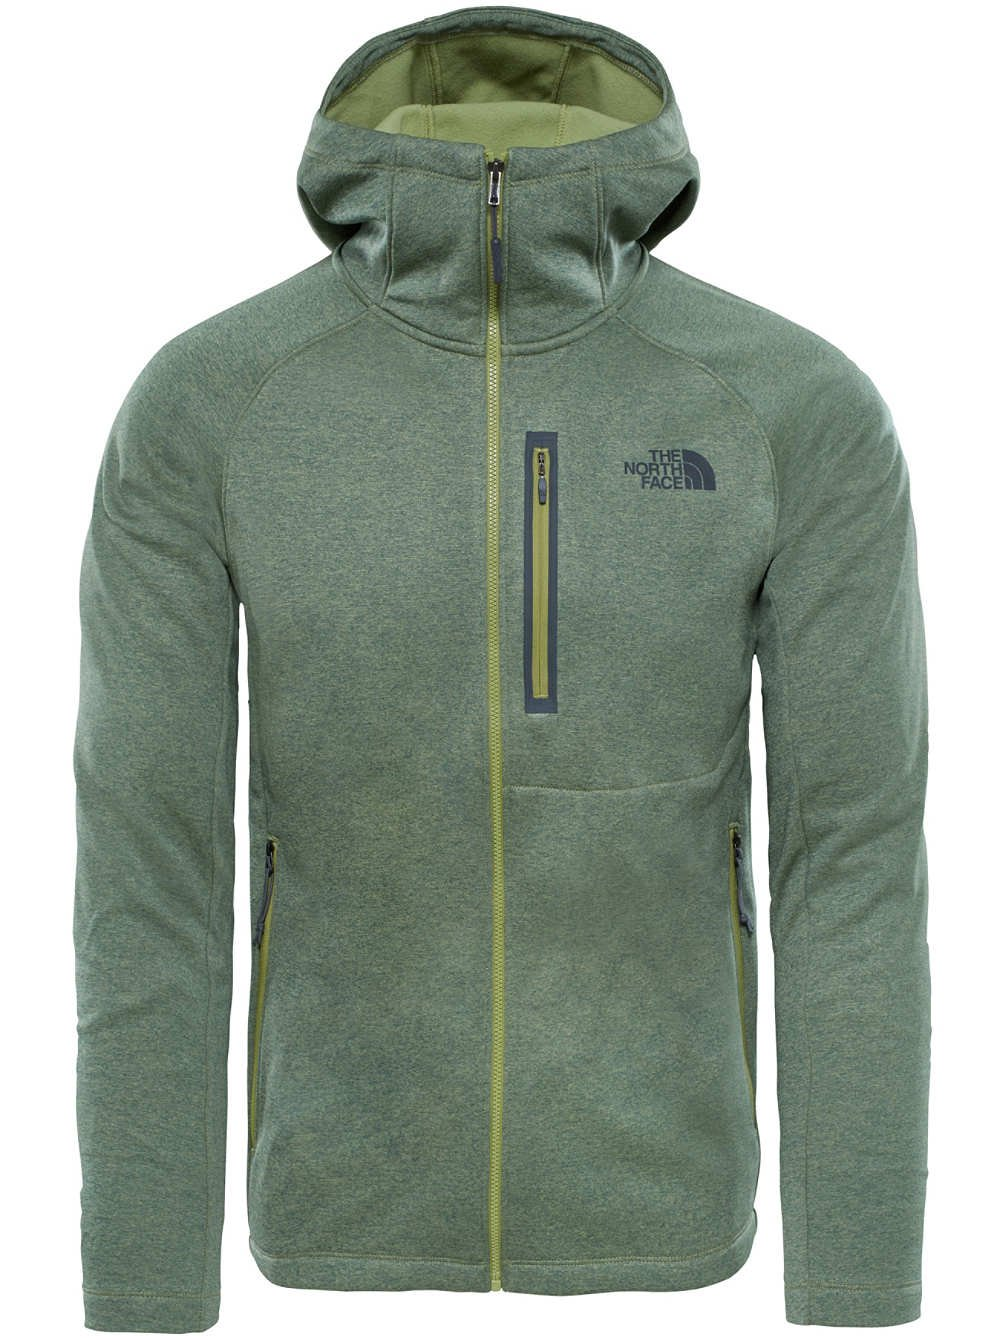 THE NORTH FACE M Canyonlands Hoodie, Sweatshirt